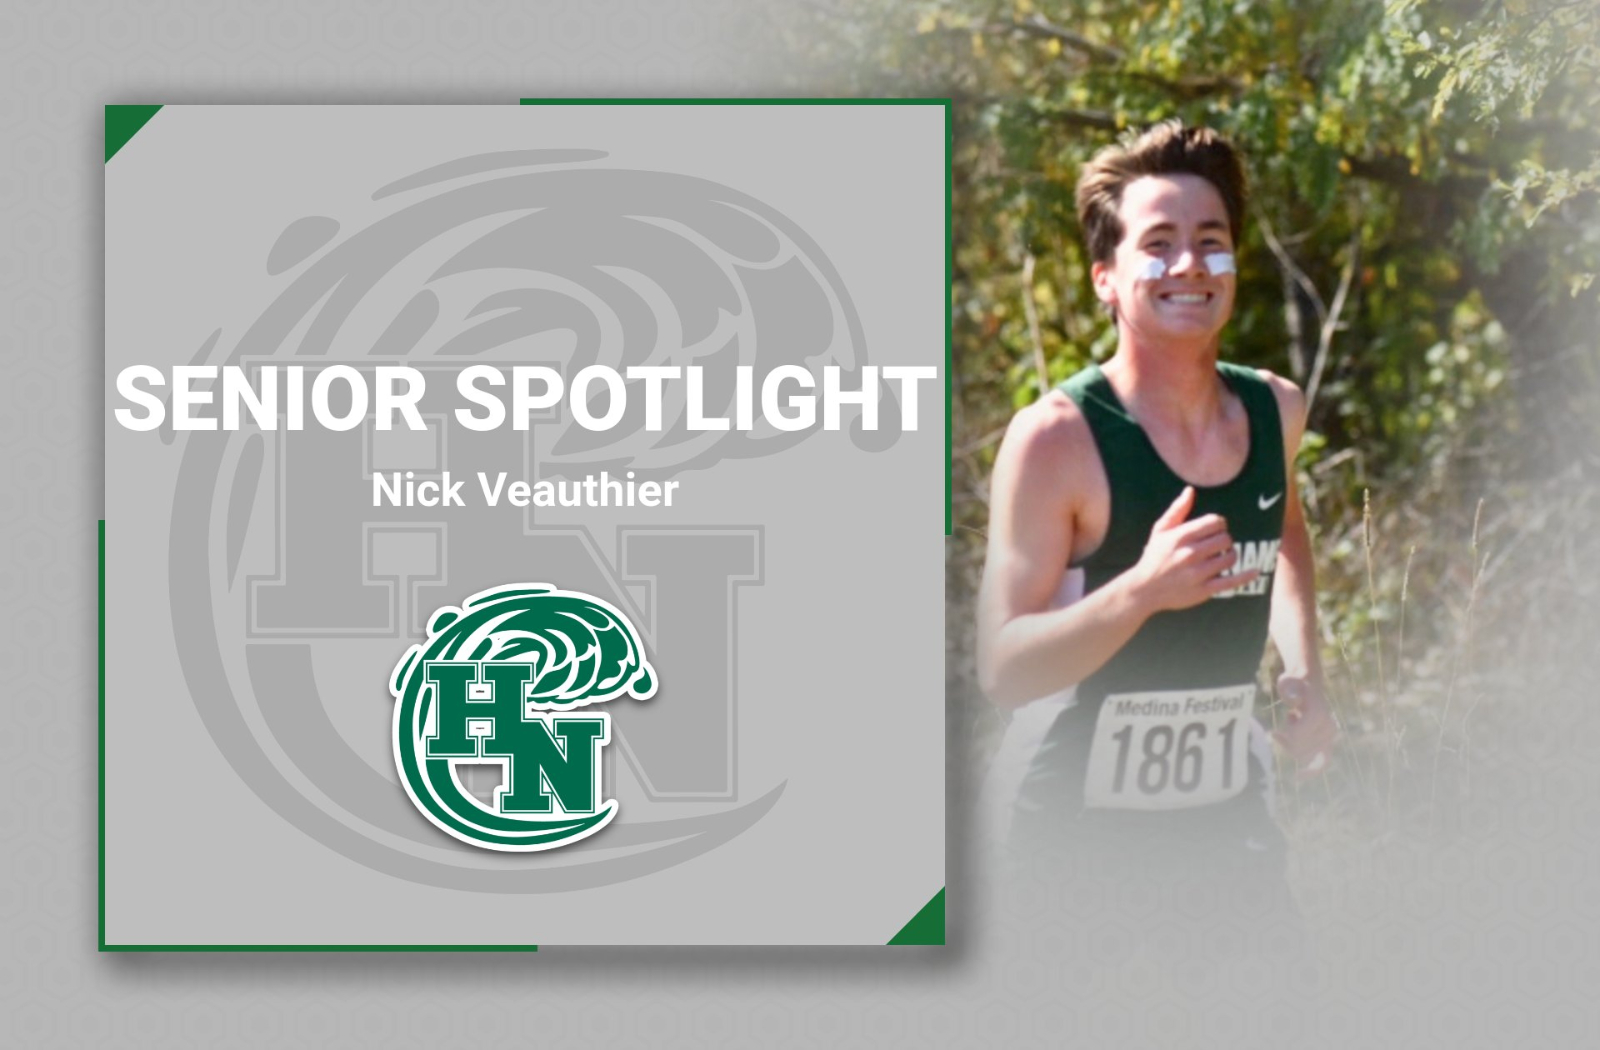 Senior Spotlight – Nick Veauthier